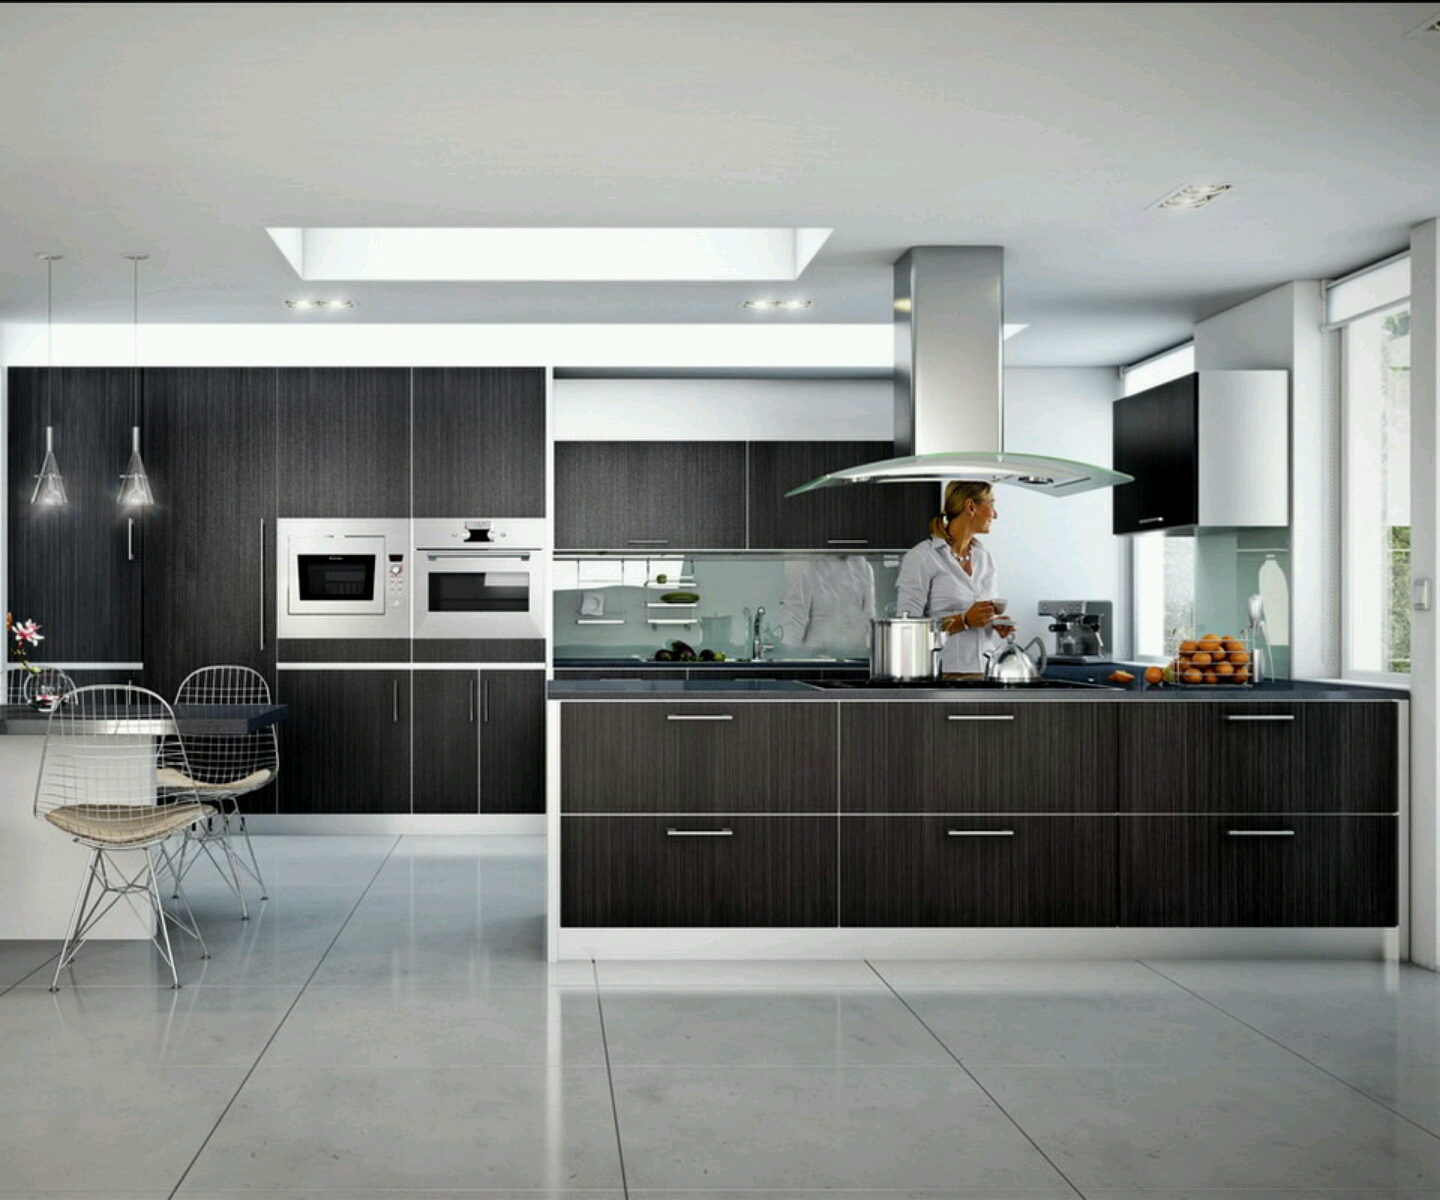 Rumah rumah minimalis modern homes ultra modern kitchen for Kitchen design and layout ideas